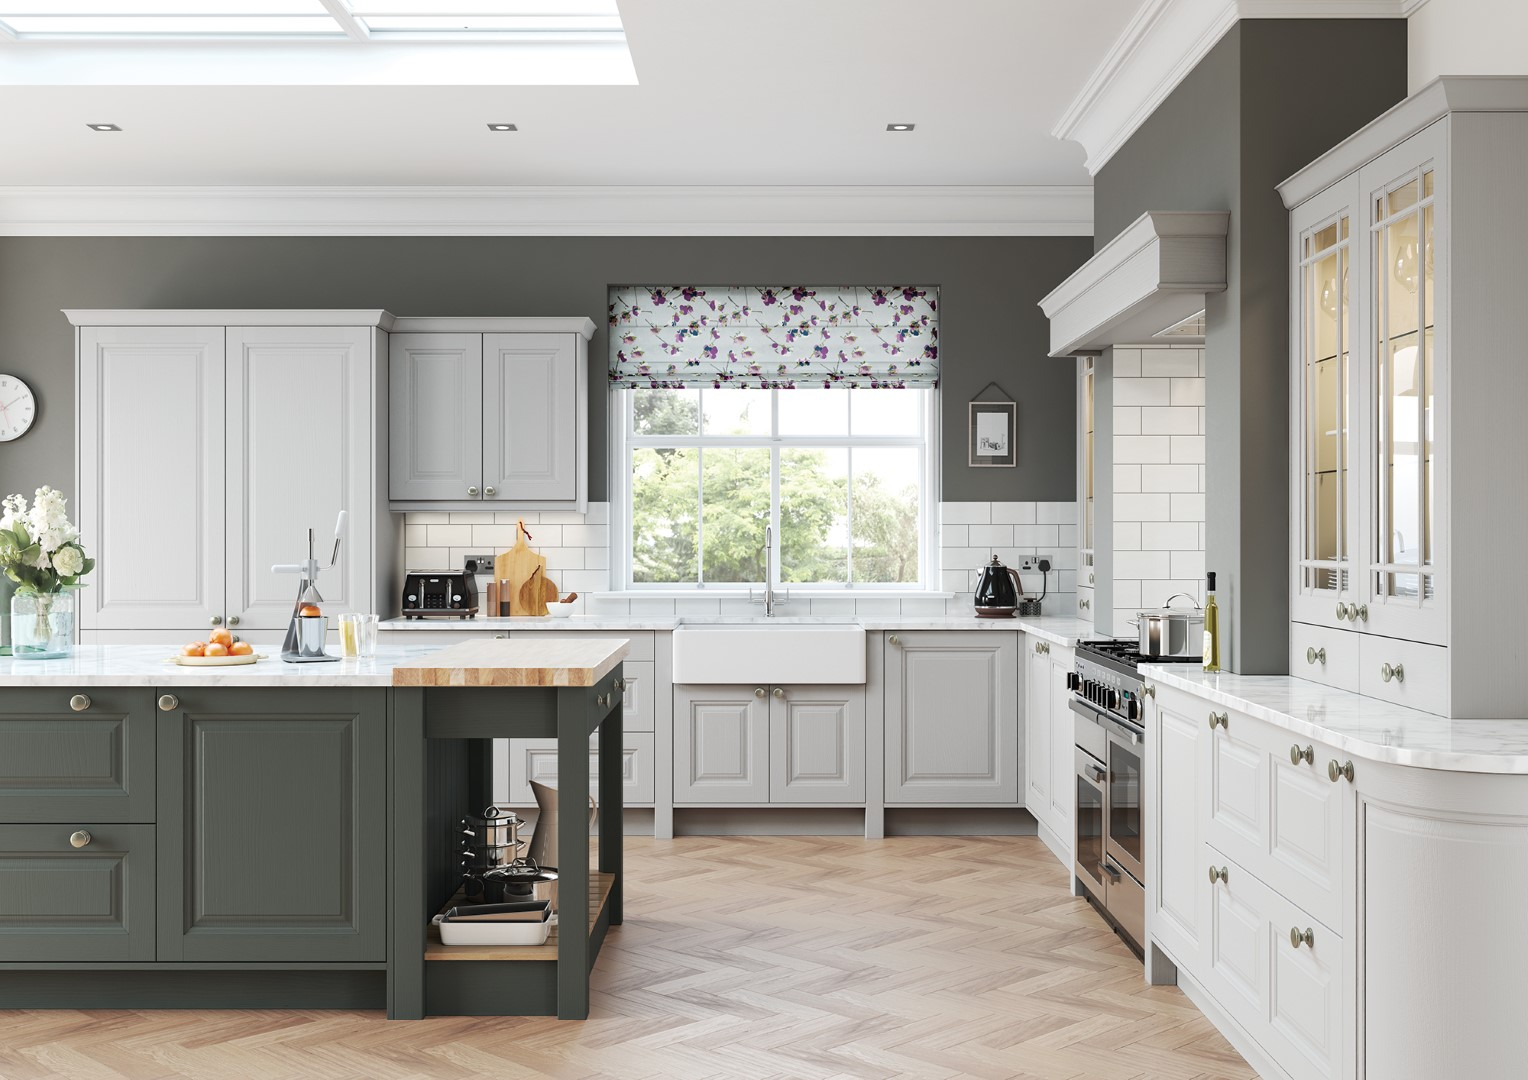 Classic Traditional Country Kitchen - Jefferson Painted Gun Metal Grey and Light Grey Kitchen - Kitchen Design - Alan Kelly Kitchens - Waterford